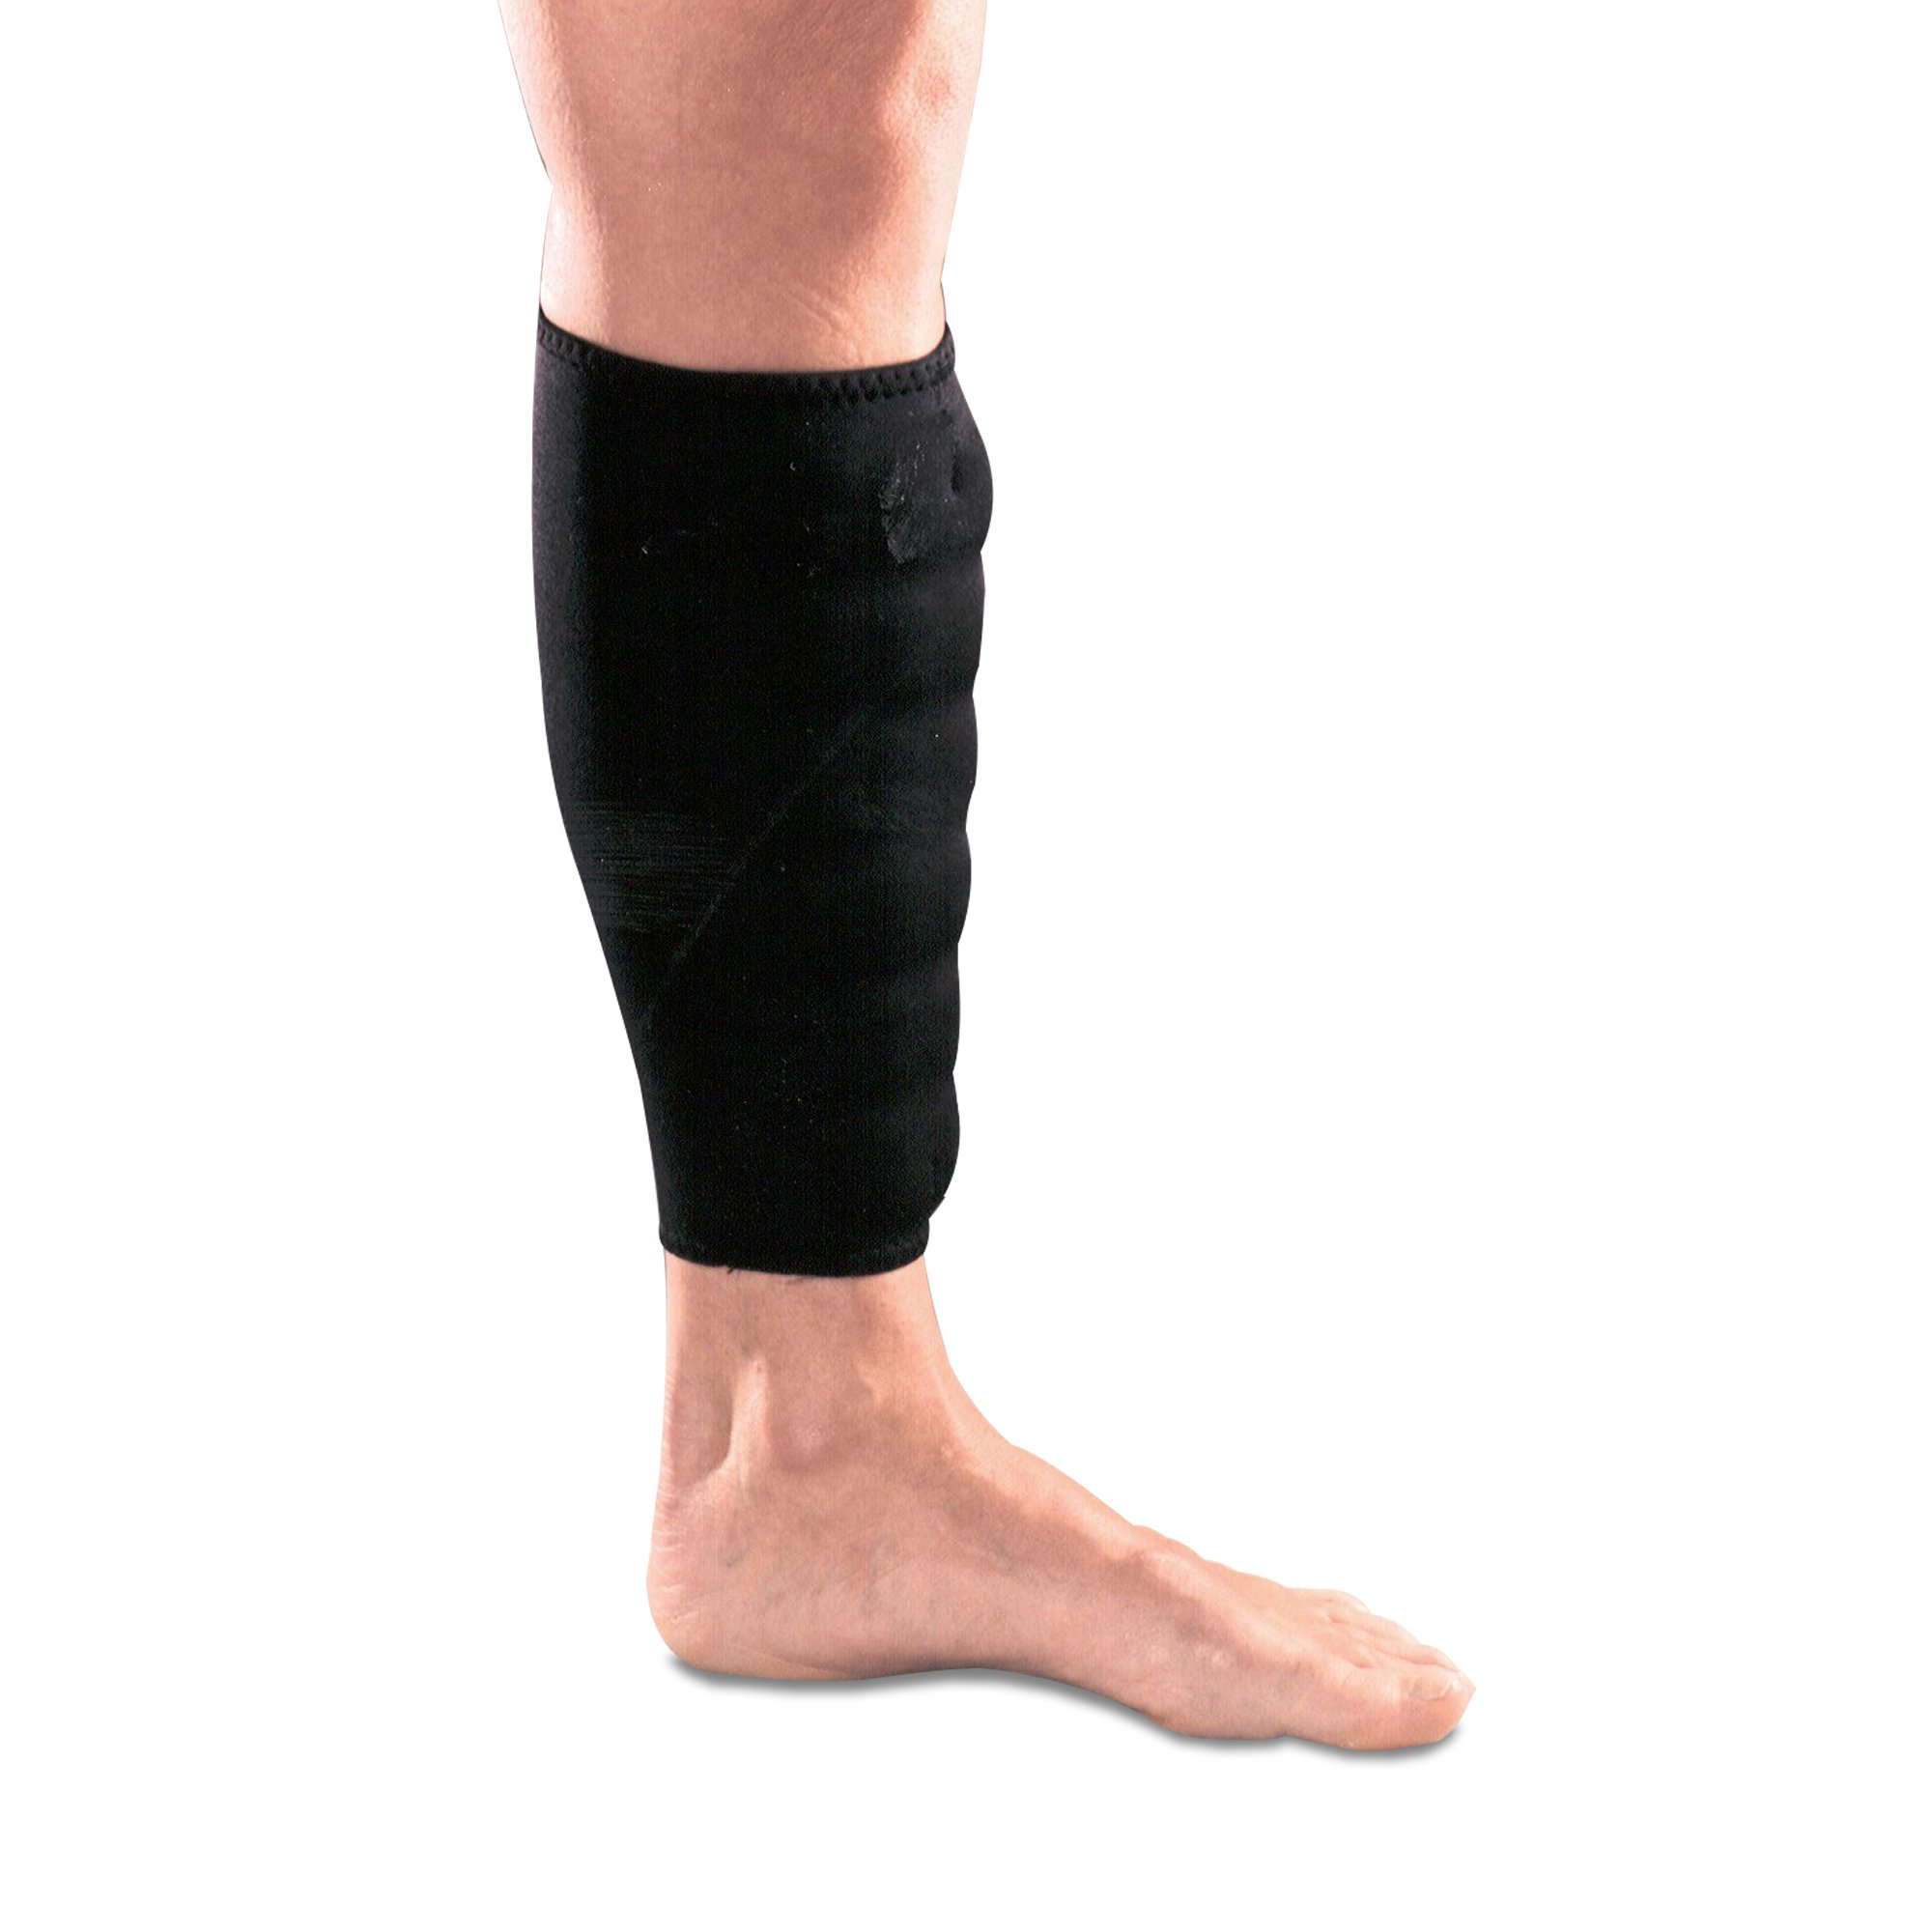 Polar Ice Shin Wrap, Cold Therapy Ice Pack, XL (Color may vary)